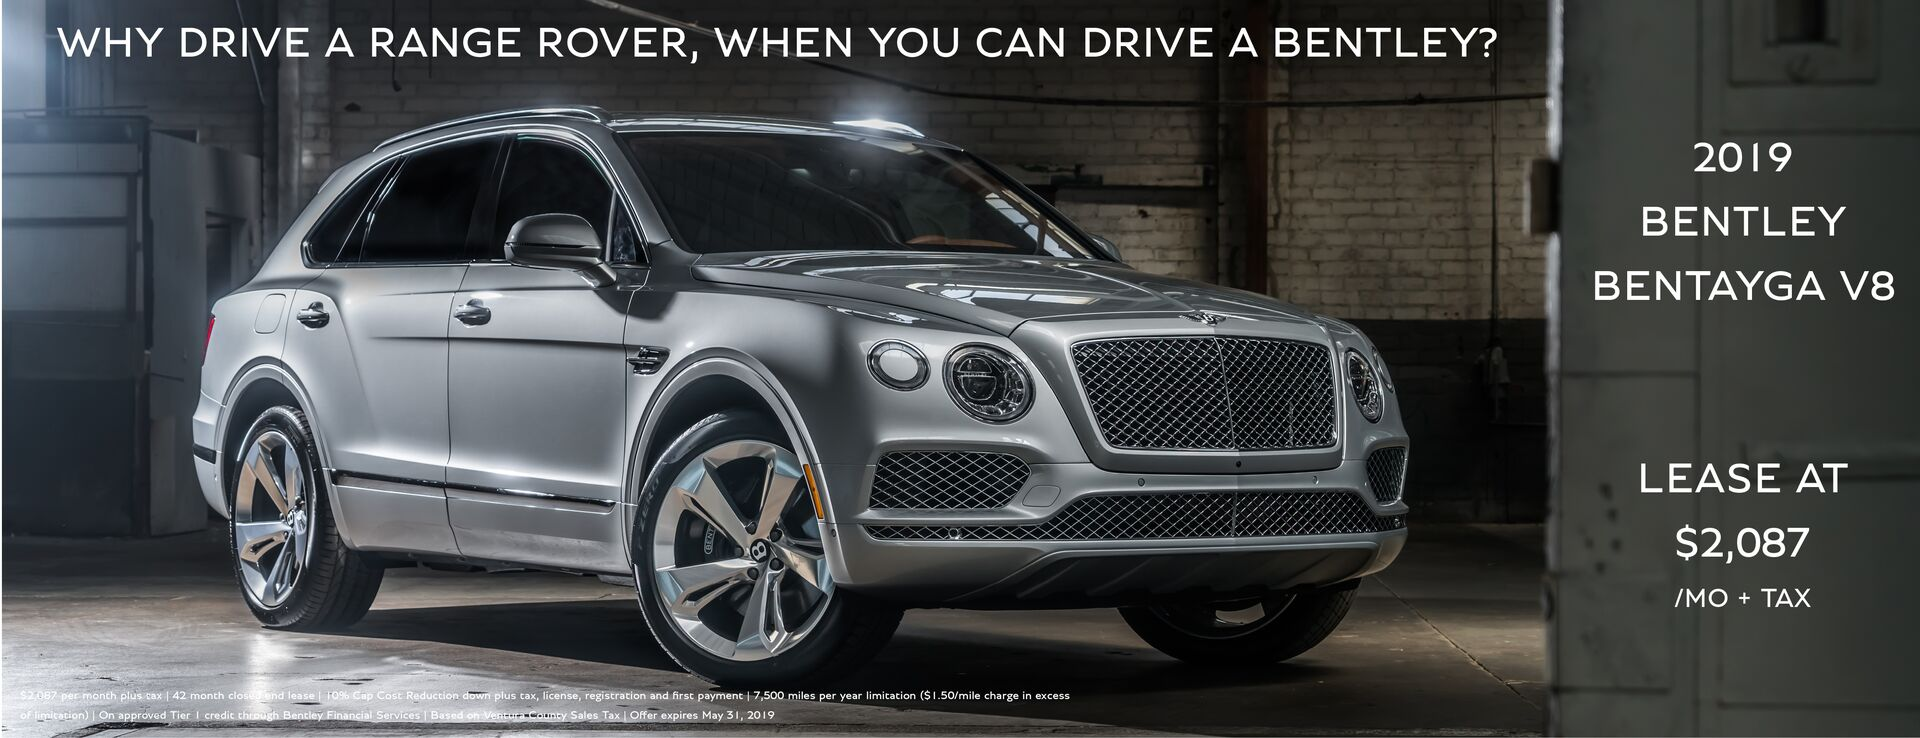 Bentley Bentayga V8- May